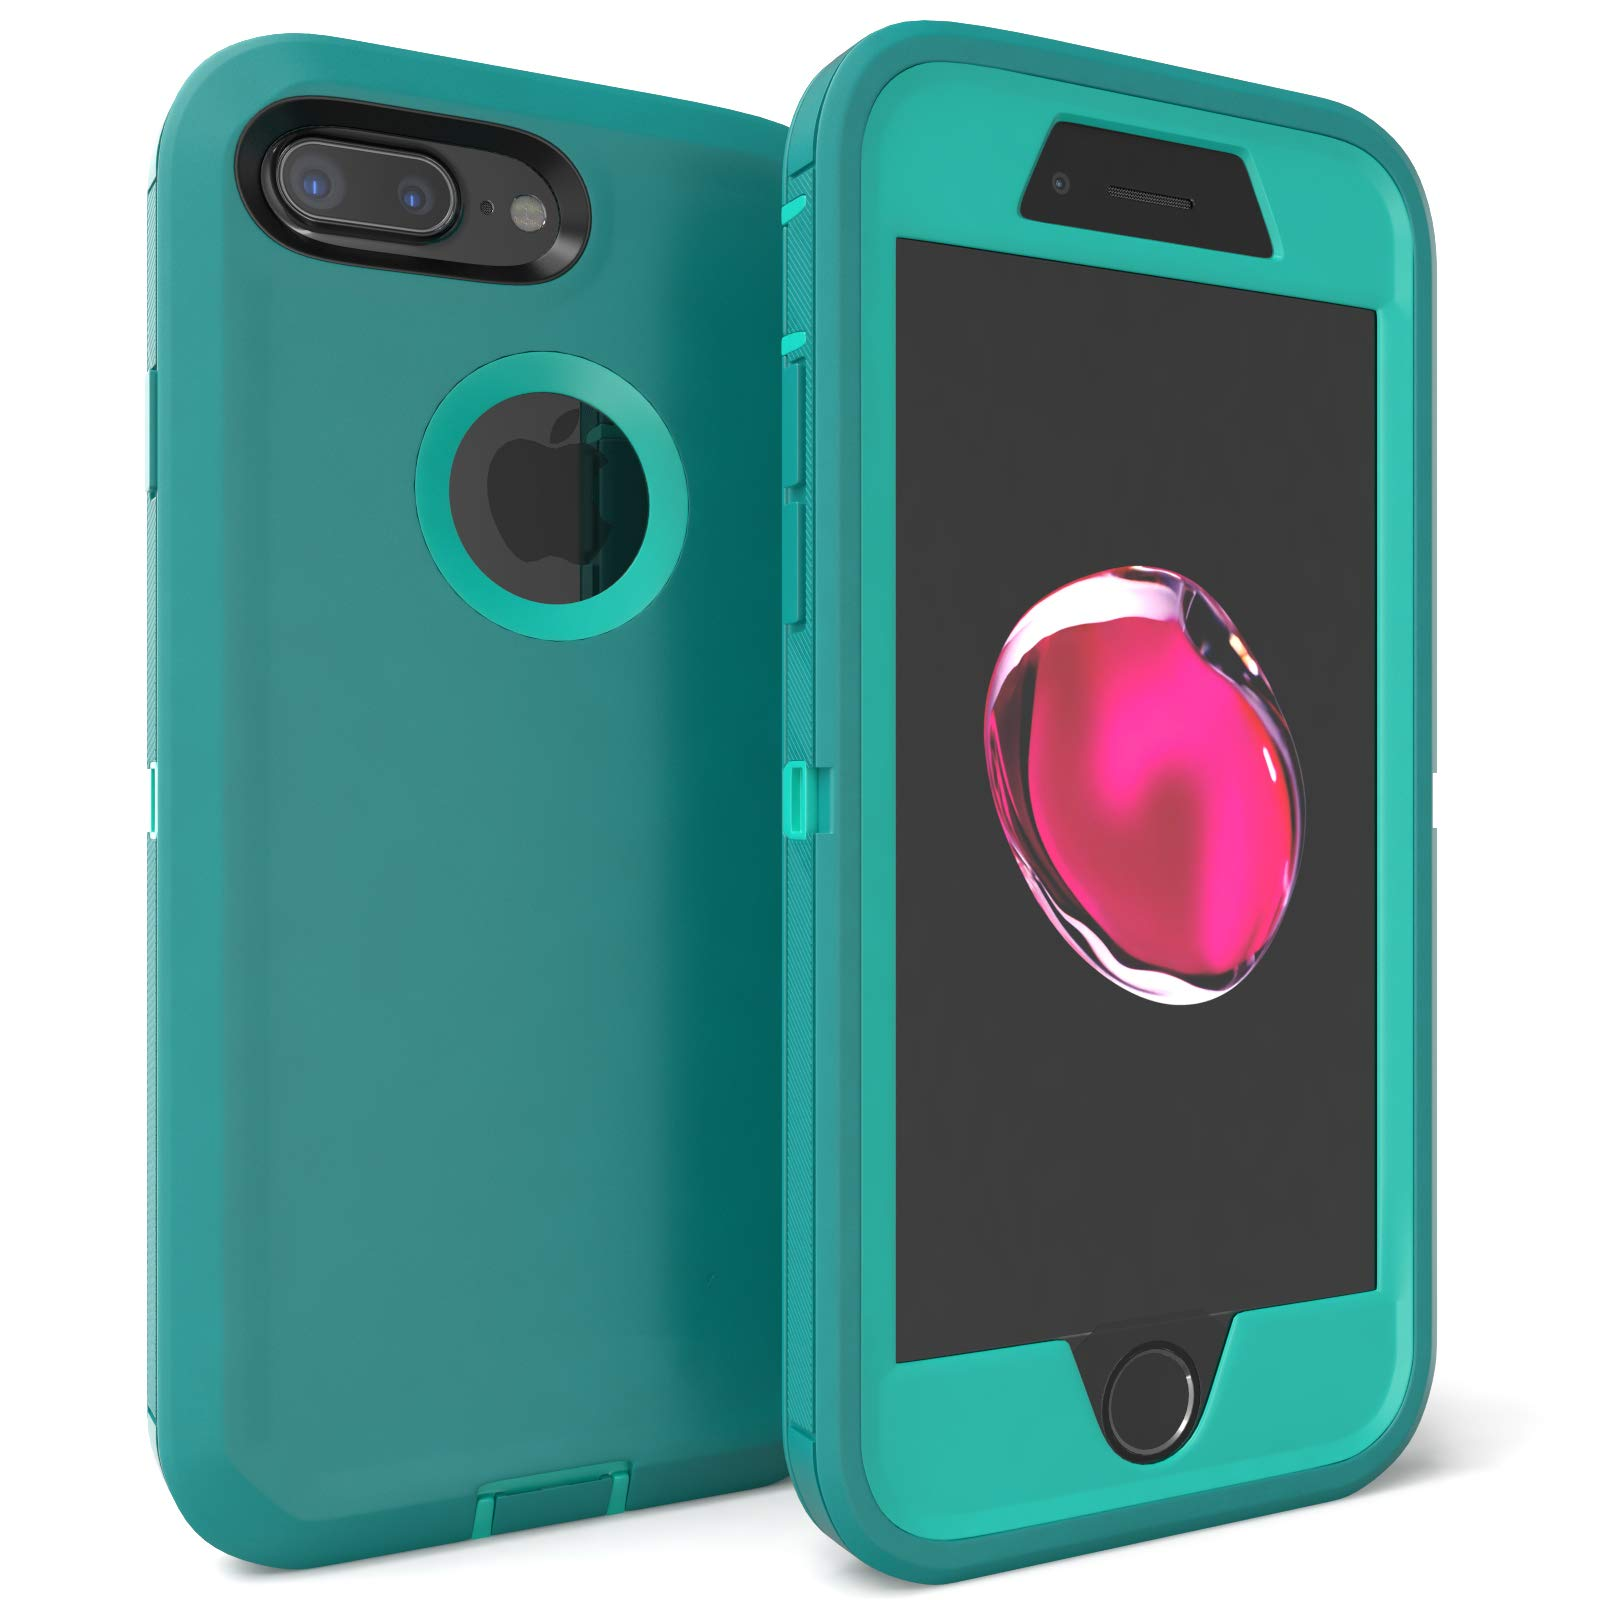 iPhone 7 Plus Case, Viero Defender Heavy Duty Rugged Impact Resistant Full Body Protective Armor Protection Belt Clip Built-in Screen Protector Case Cover for Apple iPhone 7 Plus - Teal/Teal